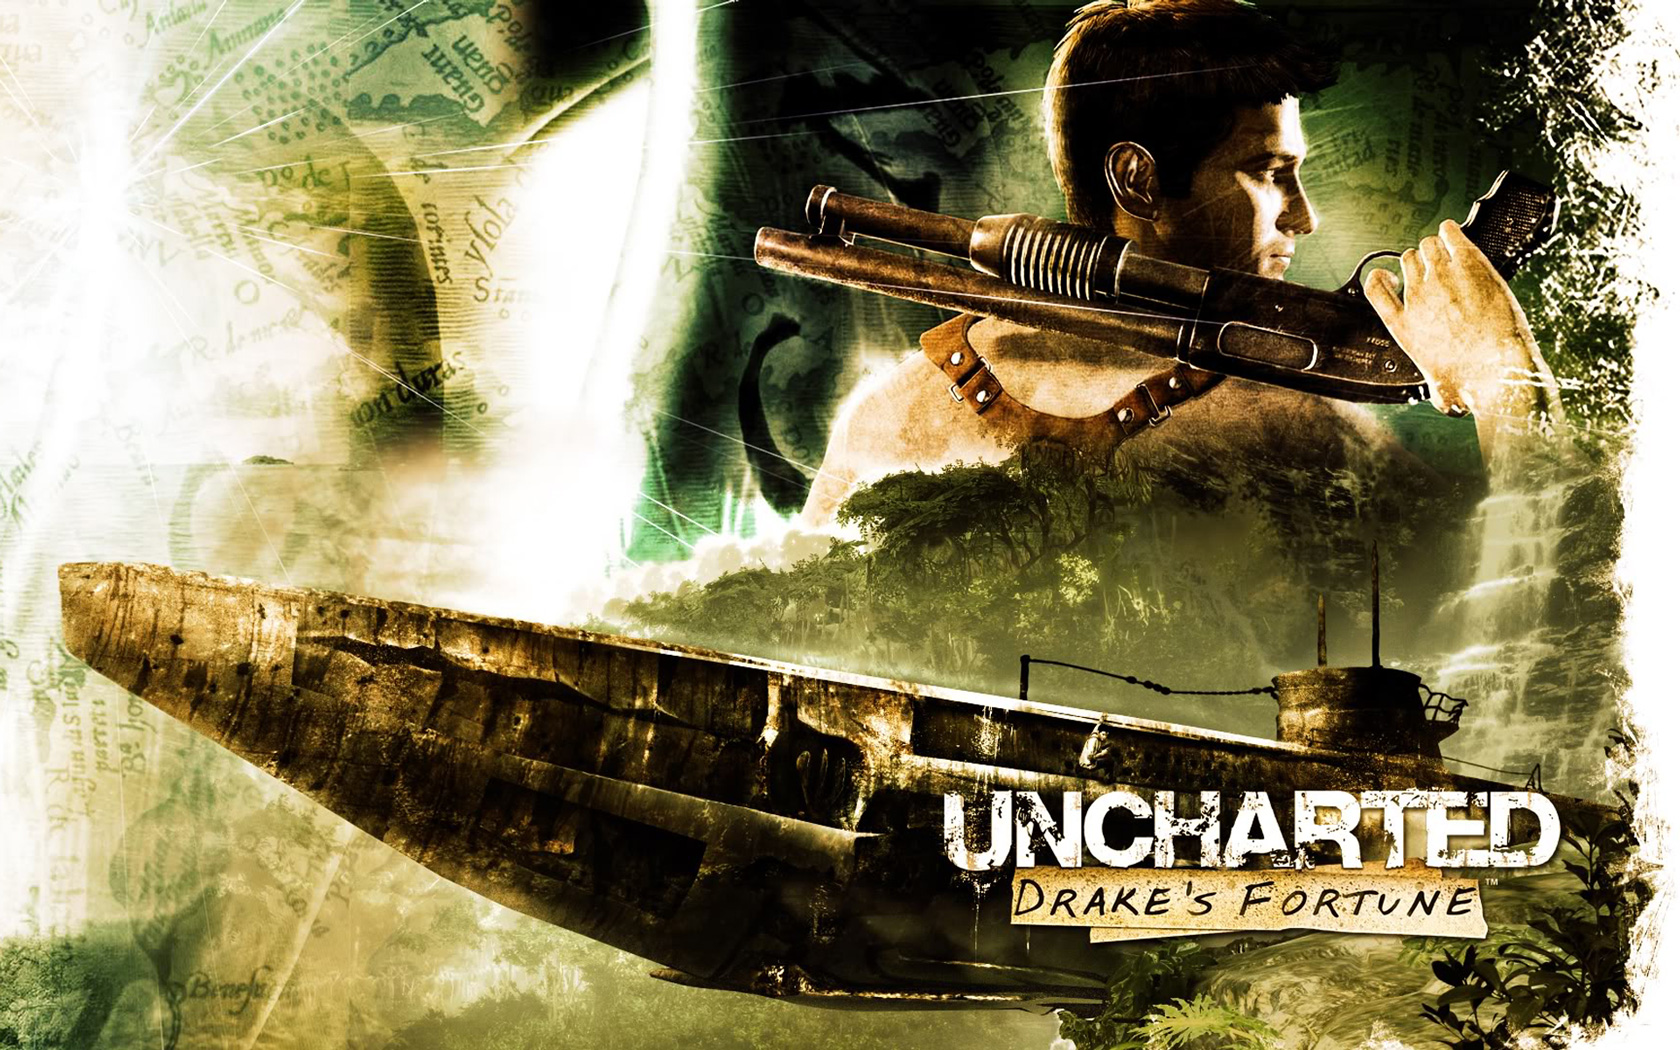 Free Uncharted: Drake's Fortune Wallpaper in 1680x1050